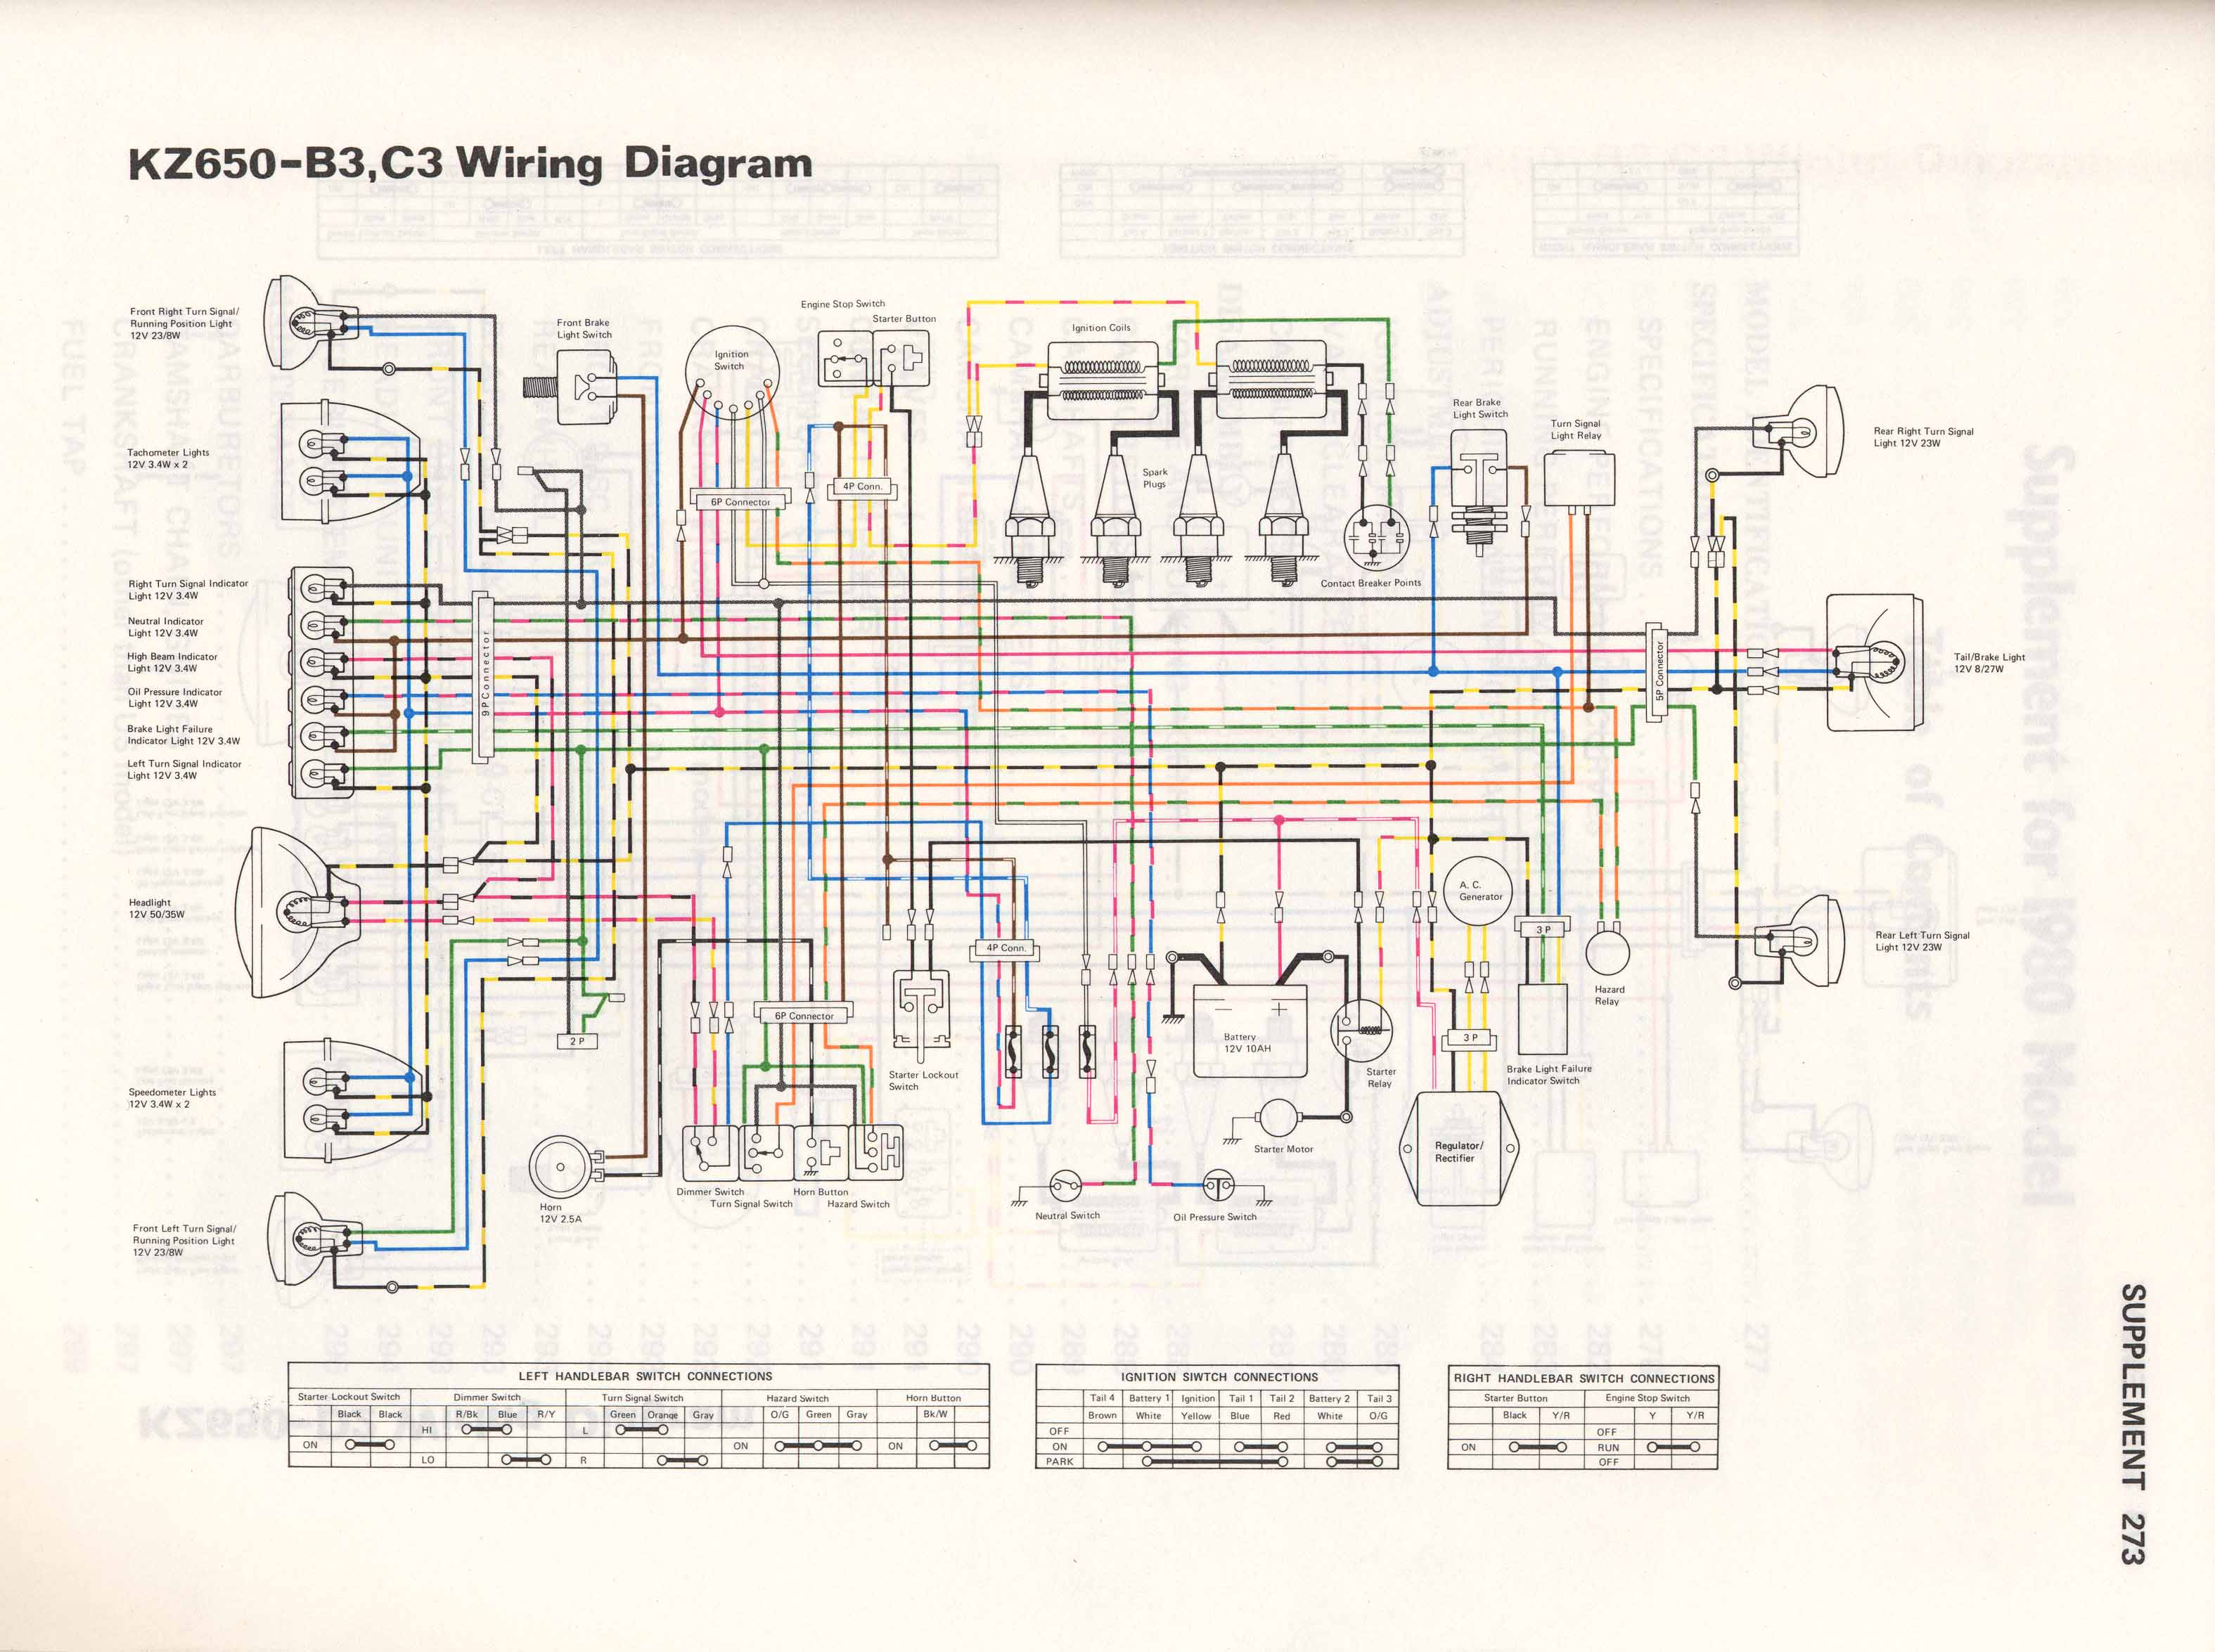 KZ650.INFO - Wiring Diagrams on h1 wiring diagram, z1000 wiring diagram, klr650 wiring diagram, zx10 wiring diagram, er6n wiring diagram, ninja 250r wiring diagram, kz1300 wiring diagram, z1 wiring diagram, gs550 wiring diagram, zx1000 wiring diagram, kl600 wiring diagram, klr250 wiring diagram, kz1000 wiring diagram, kawasaki wiring diagram, kz440 wiring diagram, zl900 eliminator wiring diagram, gs750 wiring diagram, zg1000 wiring diagram, z400 wiring diagram, ex250 wiring diagram,